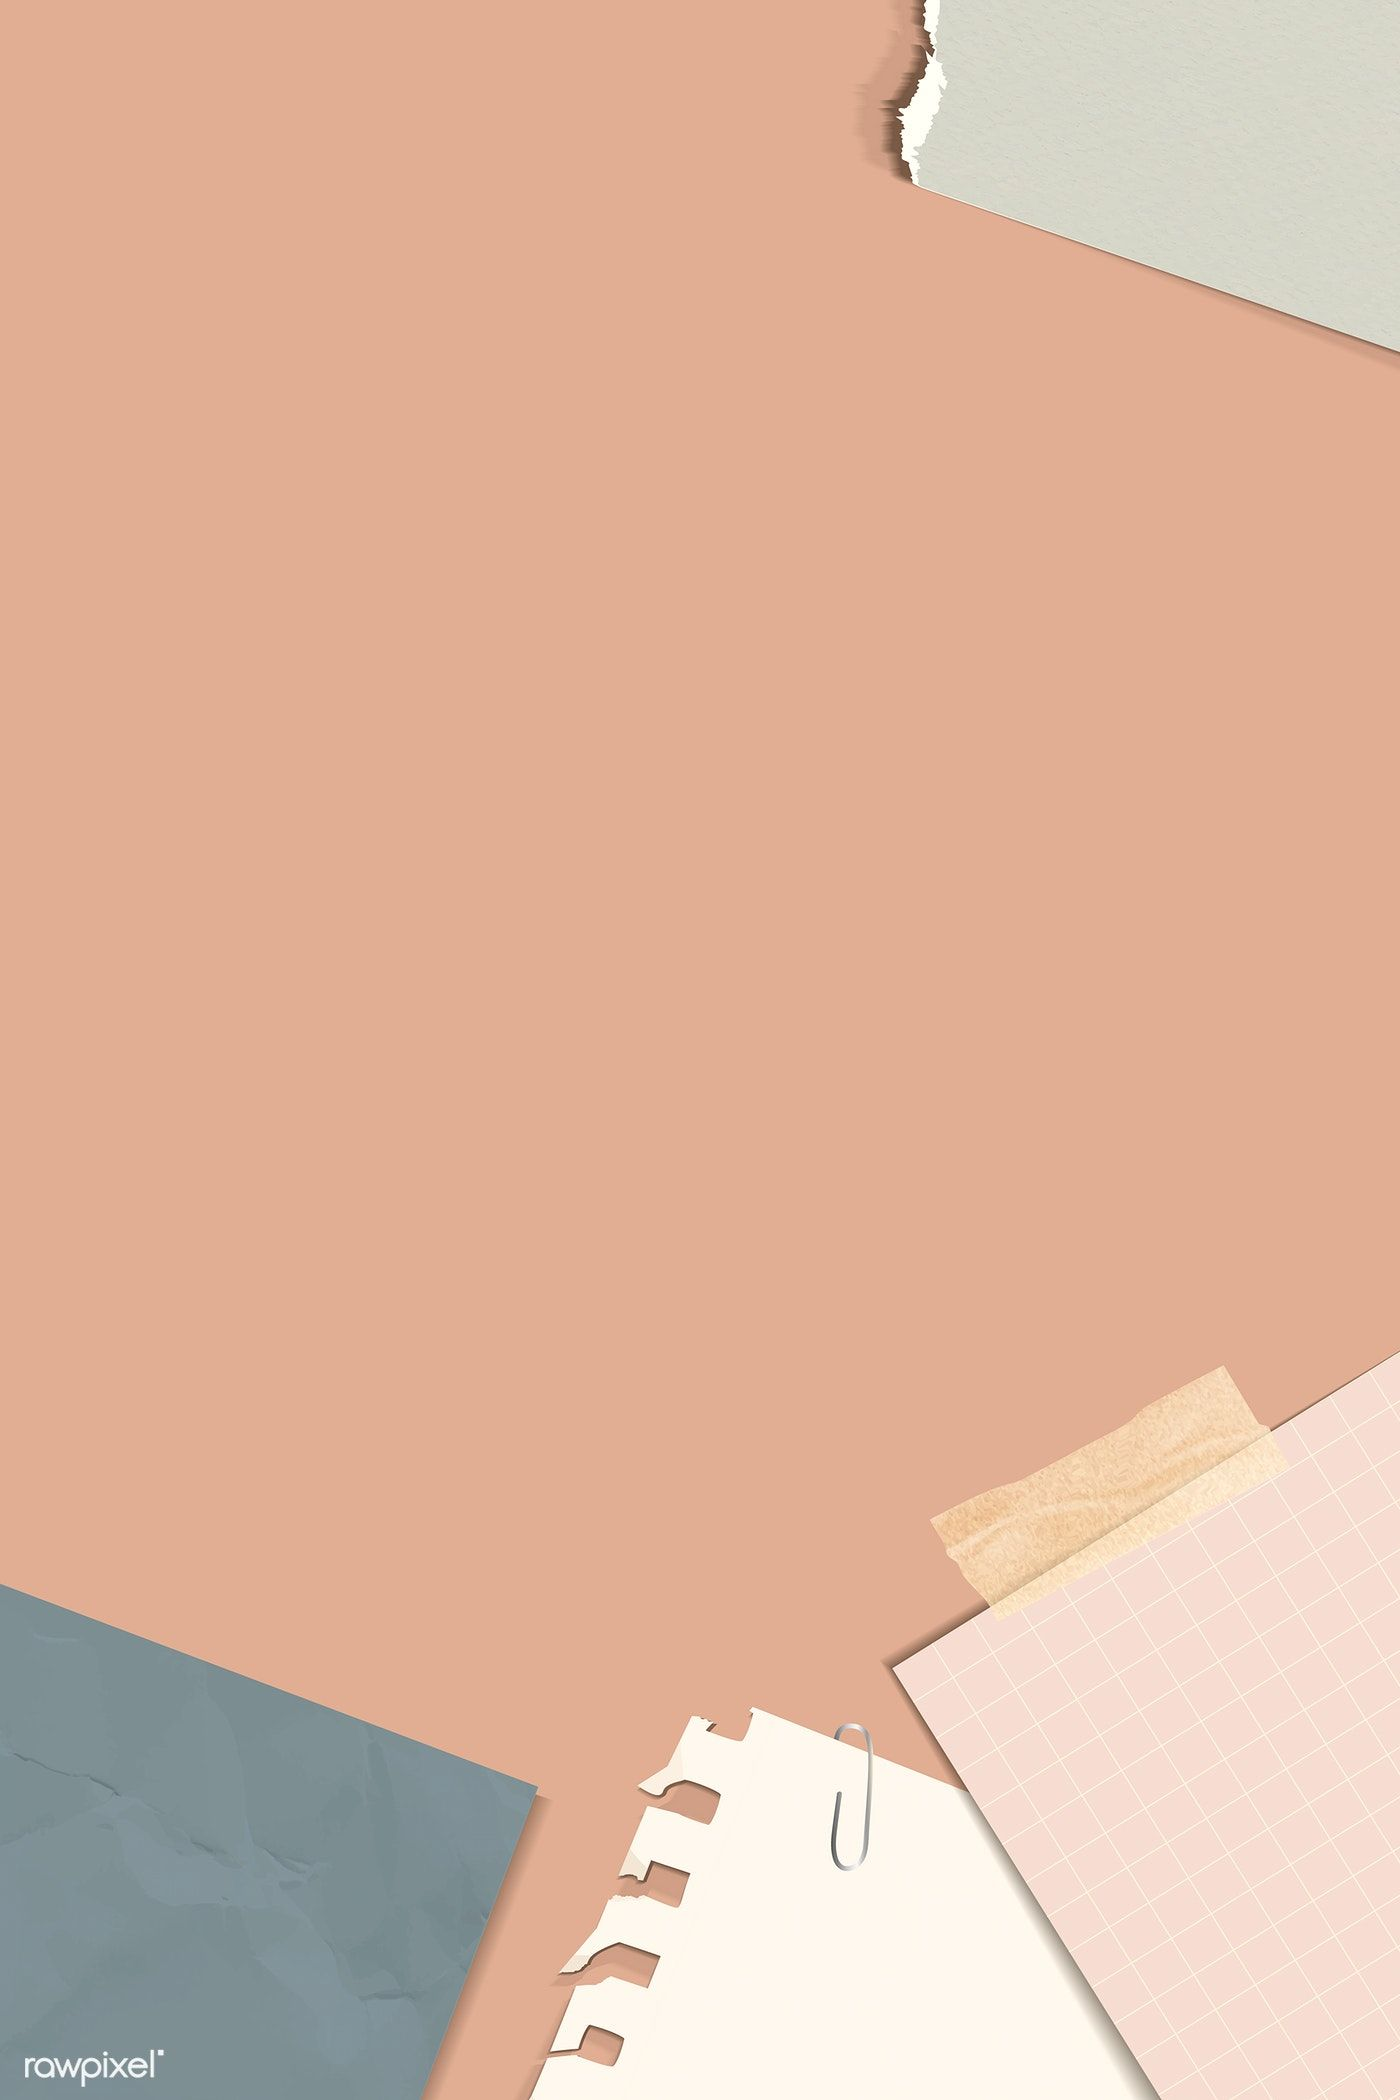 Download premium vector of Ripped notes on a peach background 1400x2100